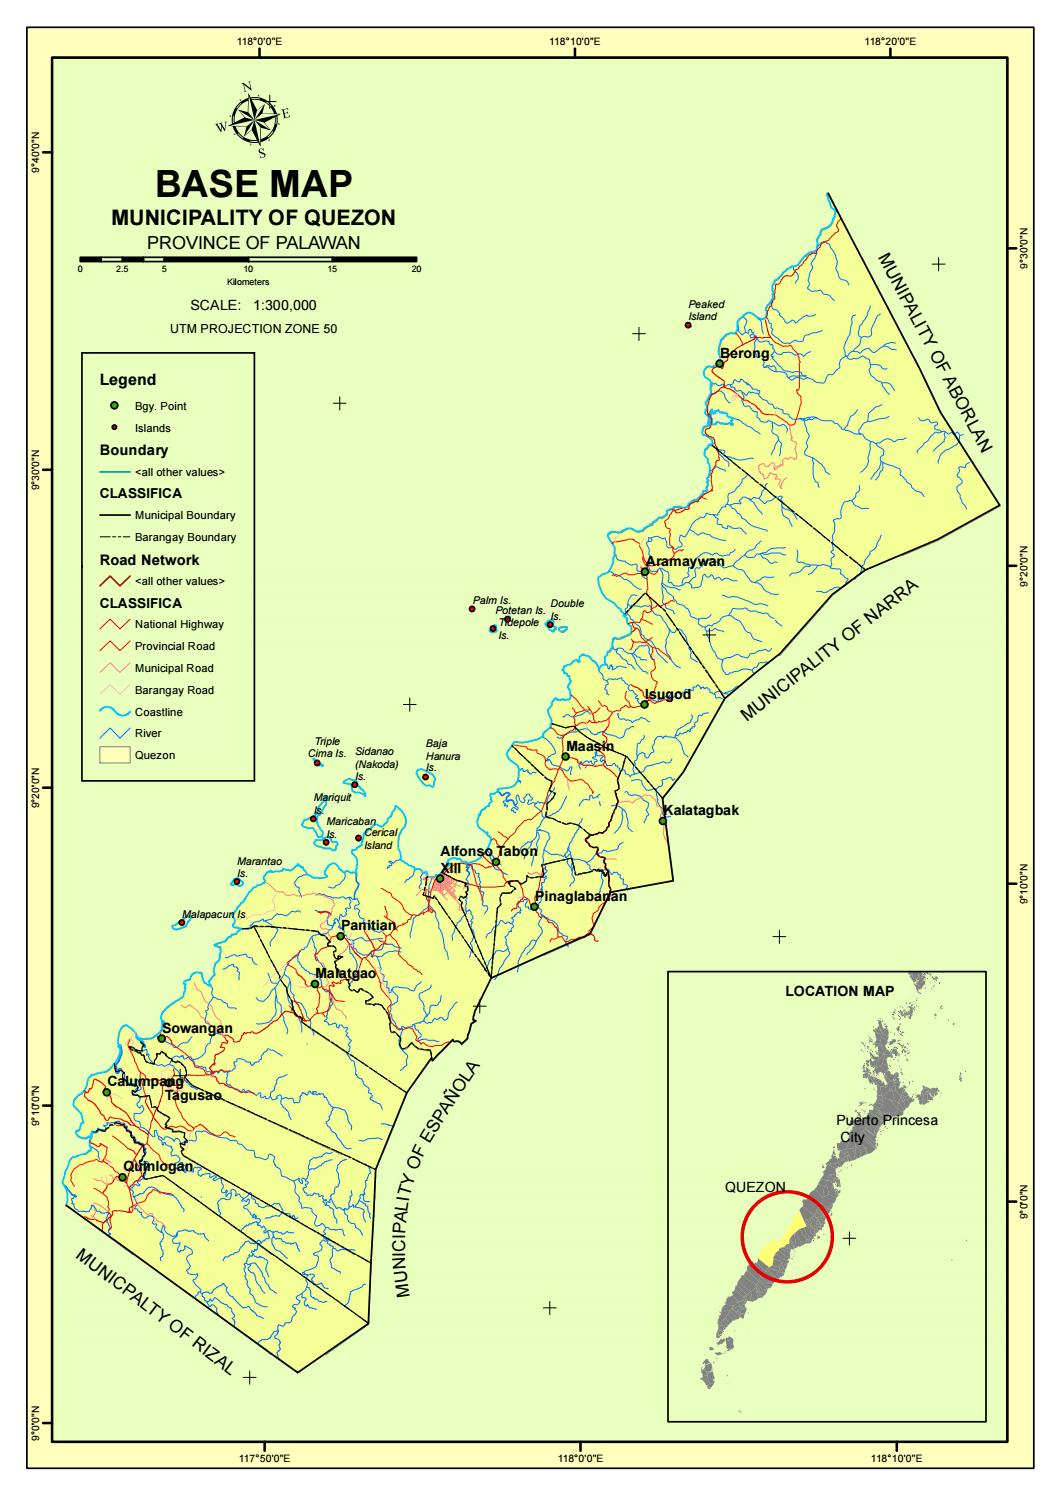 Quezon Base Map 2 By Secretary To The Sangguniang Bayan Of